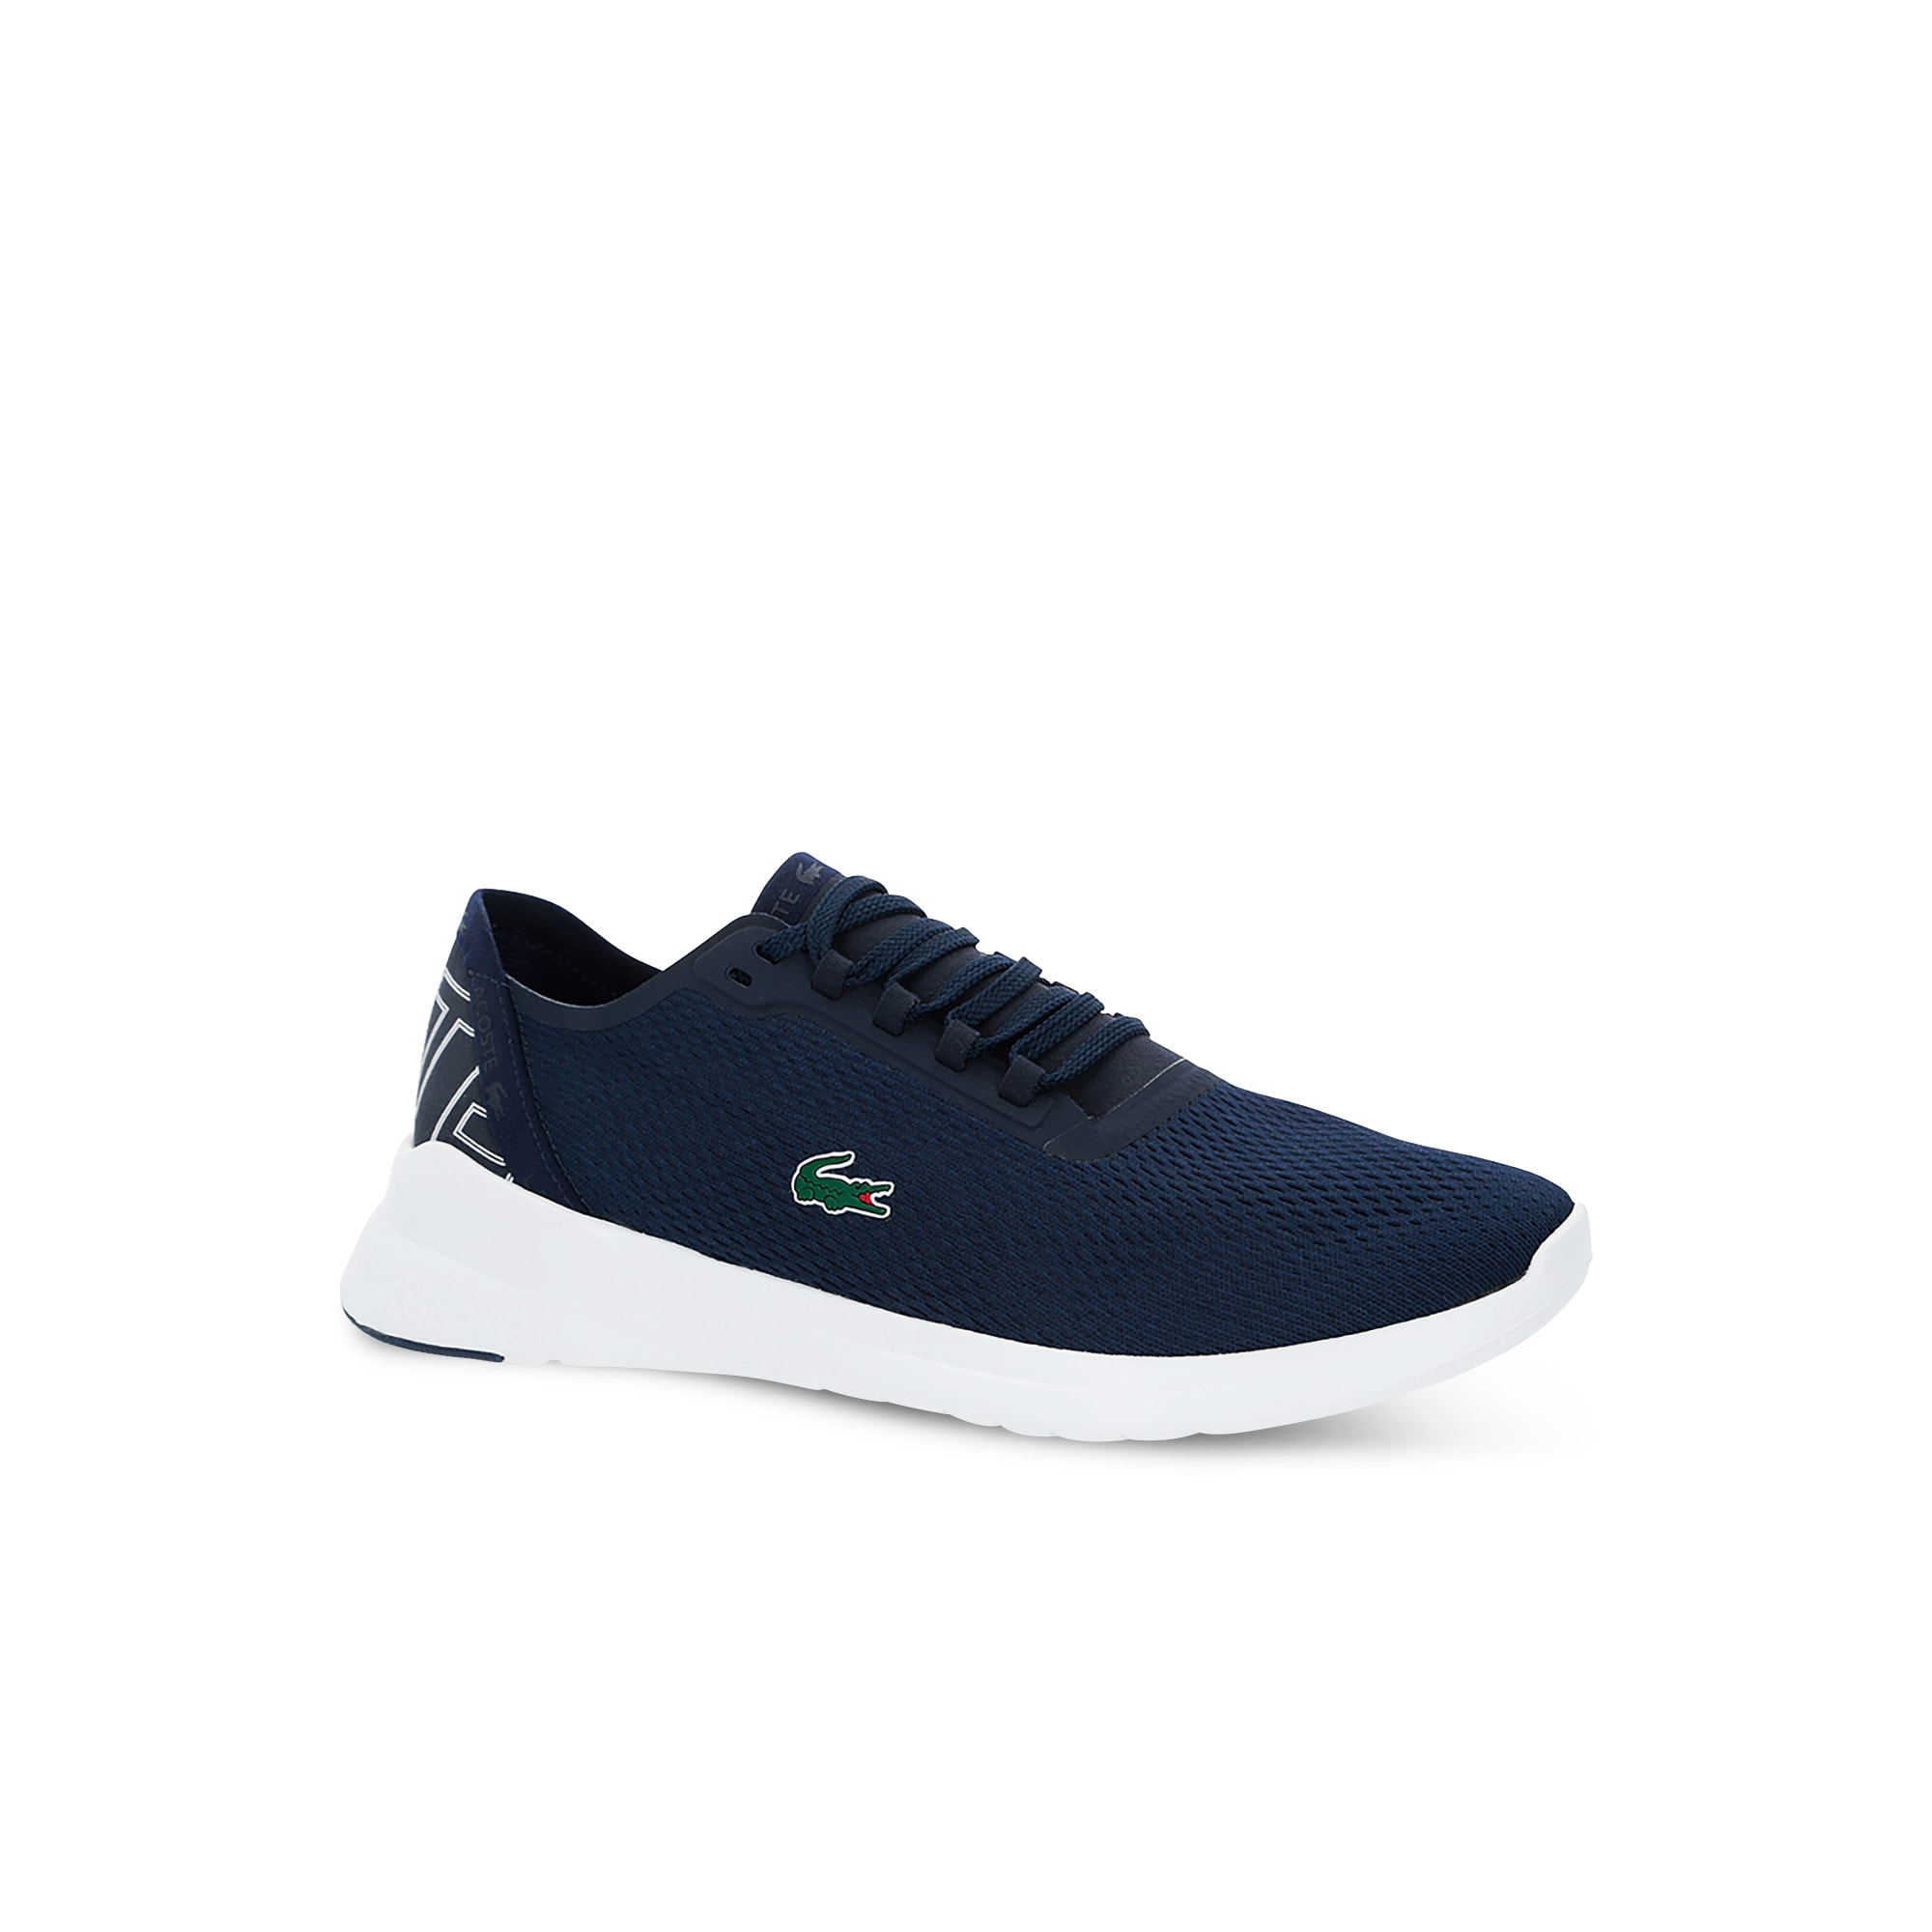 Men's LT Fit Trainers with Green Croc